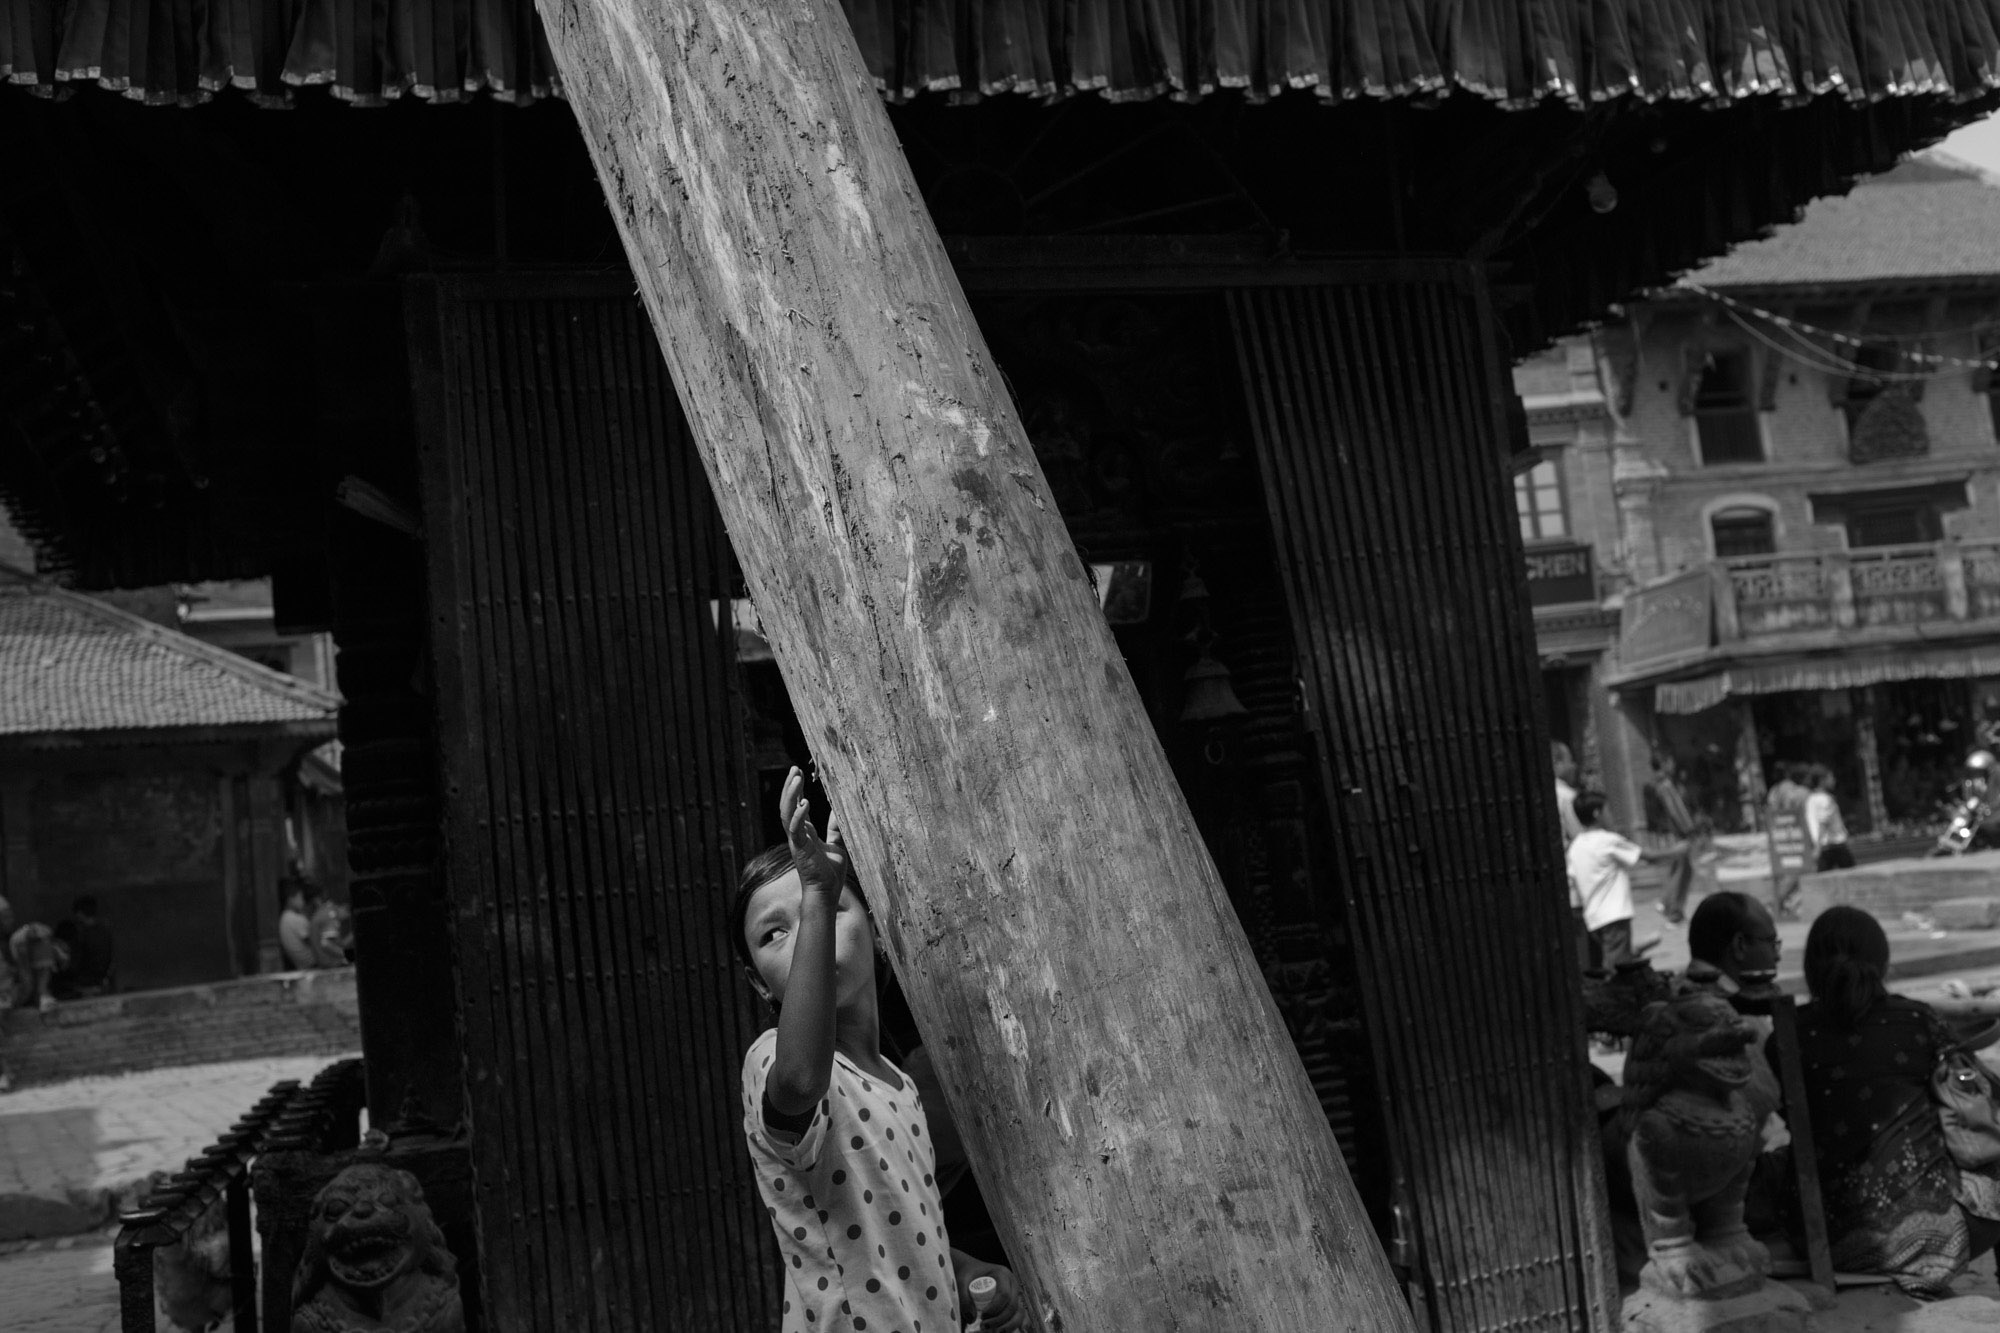 A young girl places her hand on a tall wooden pole believed to bring good luck during the Nepali New Year.